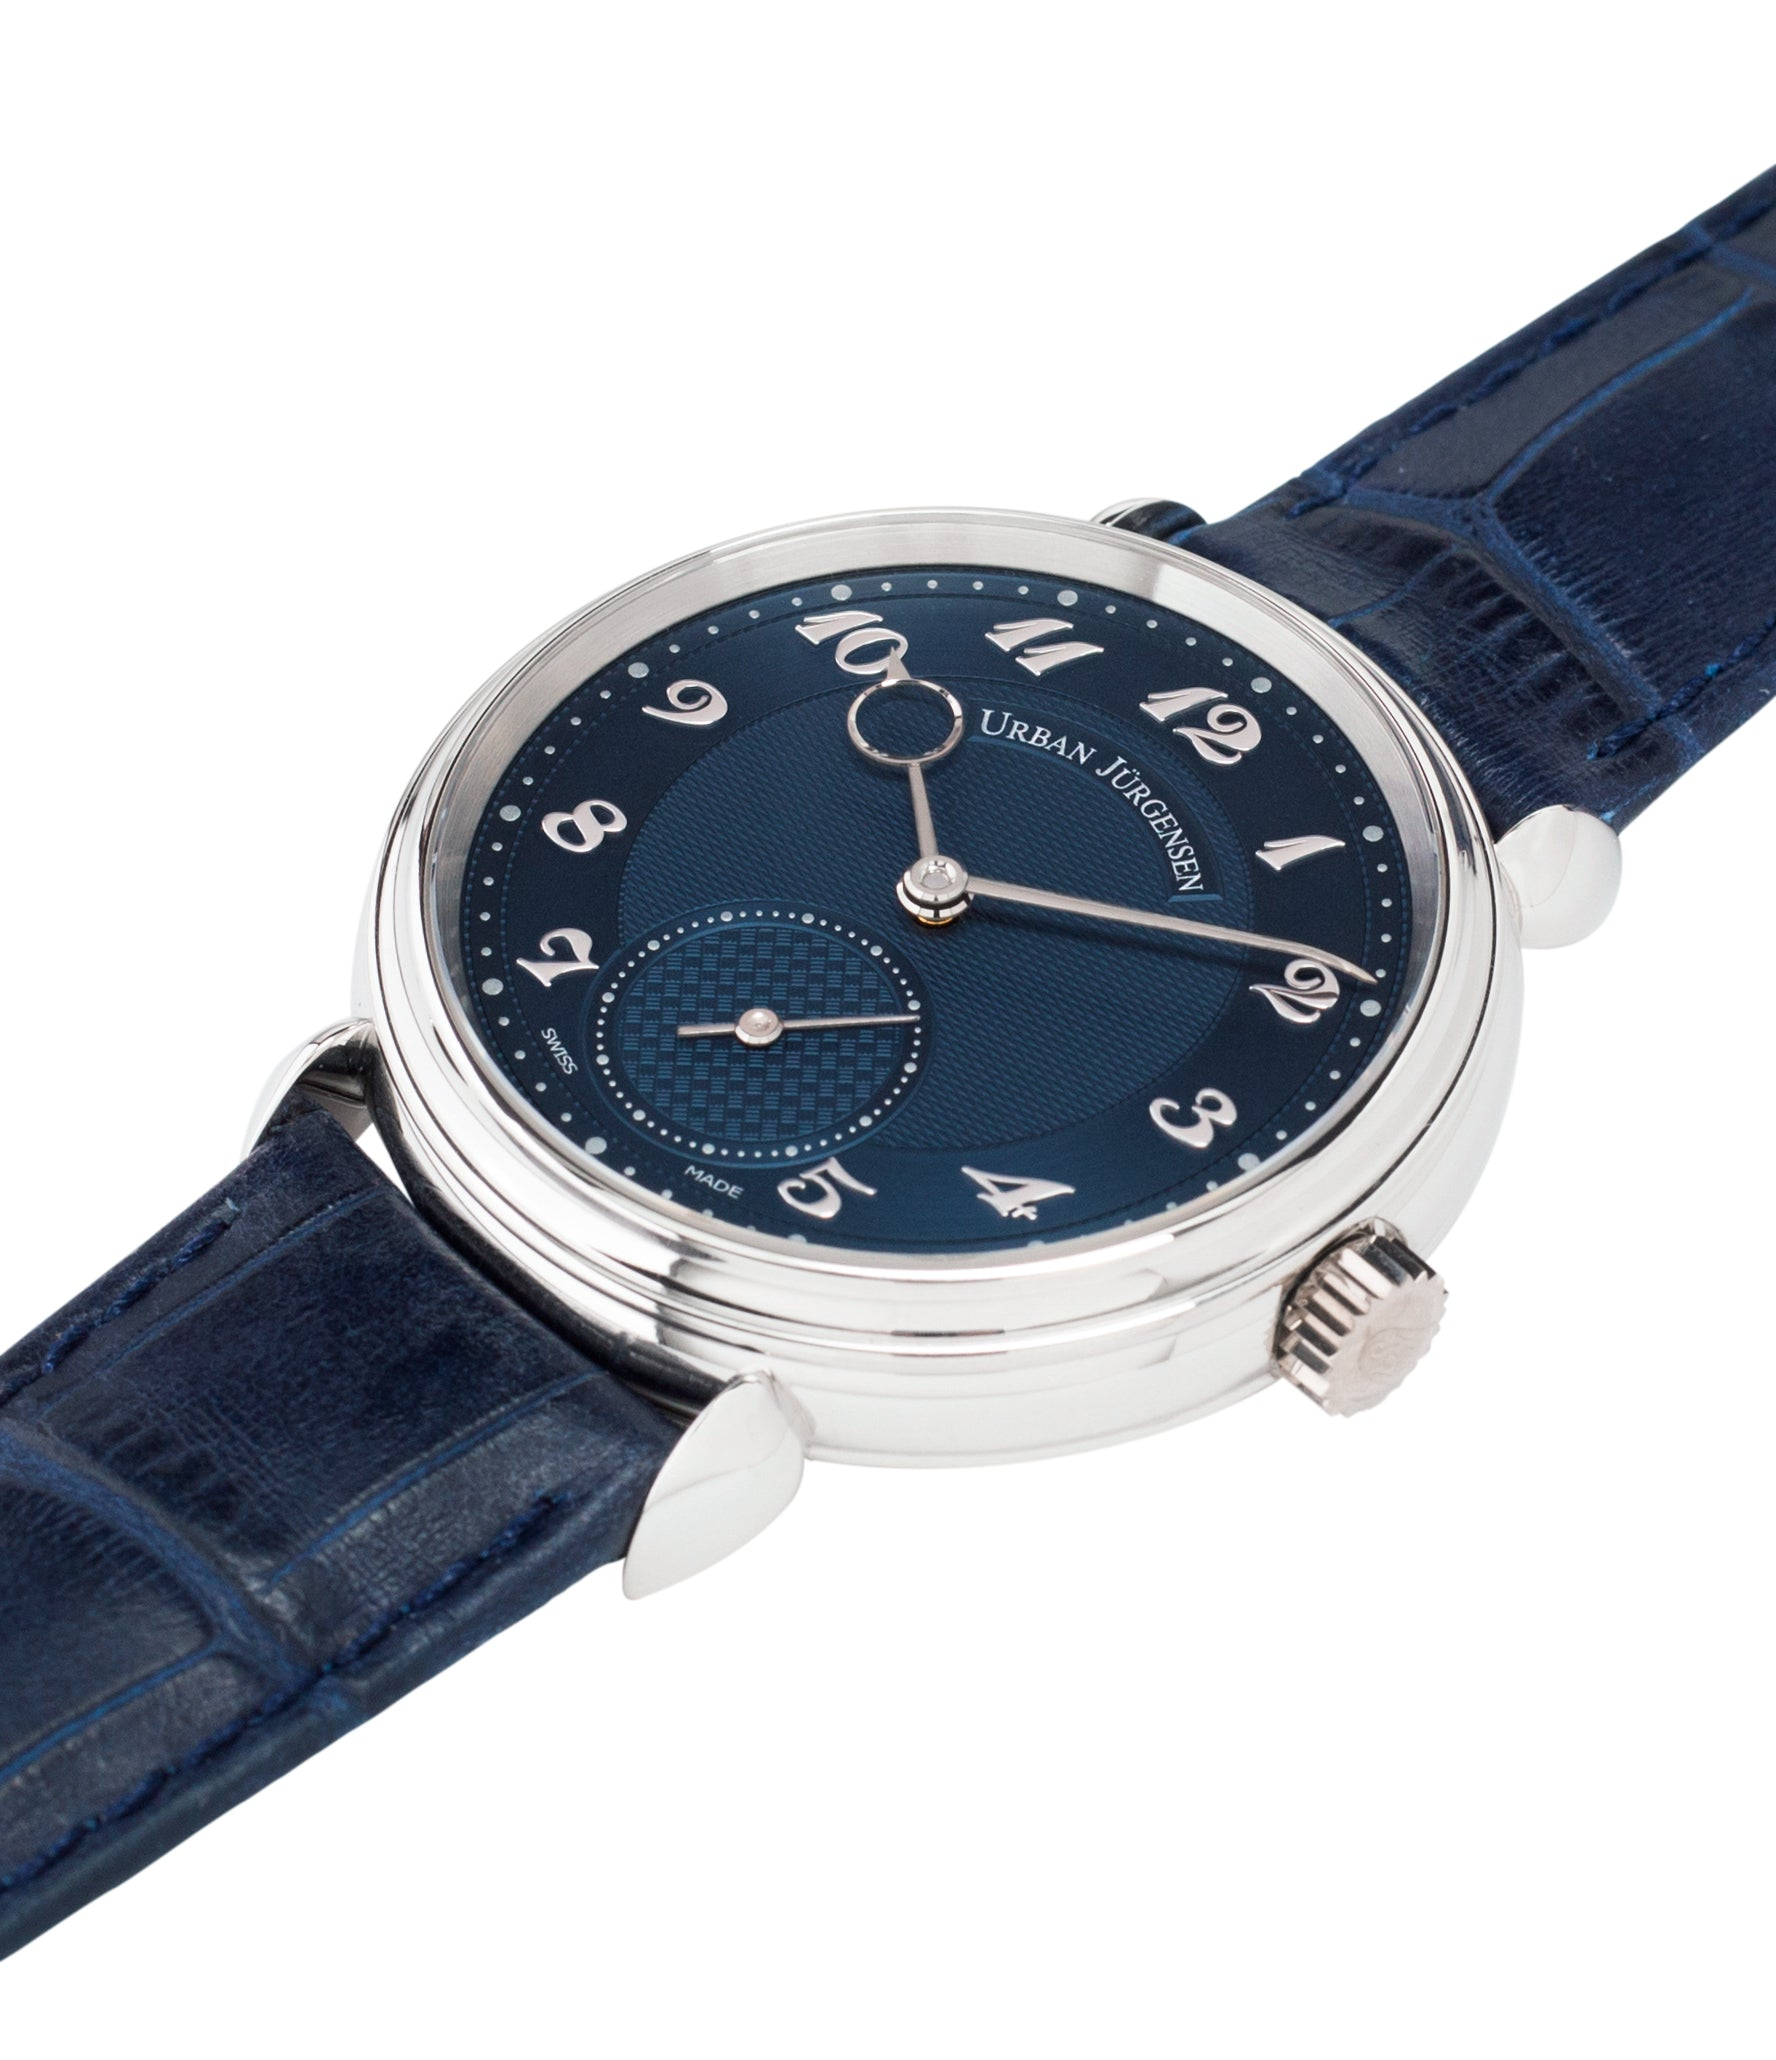 for sale Urban Jurgensen 1140 PT Blue dial watch online at A Collected Man London independent watchmaker specialist authorised retailer in the UK